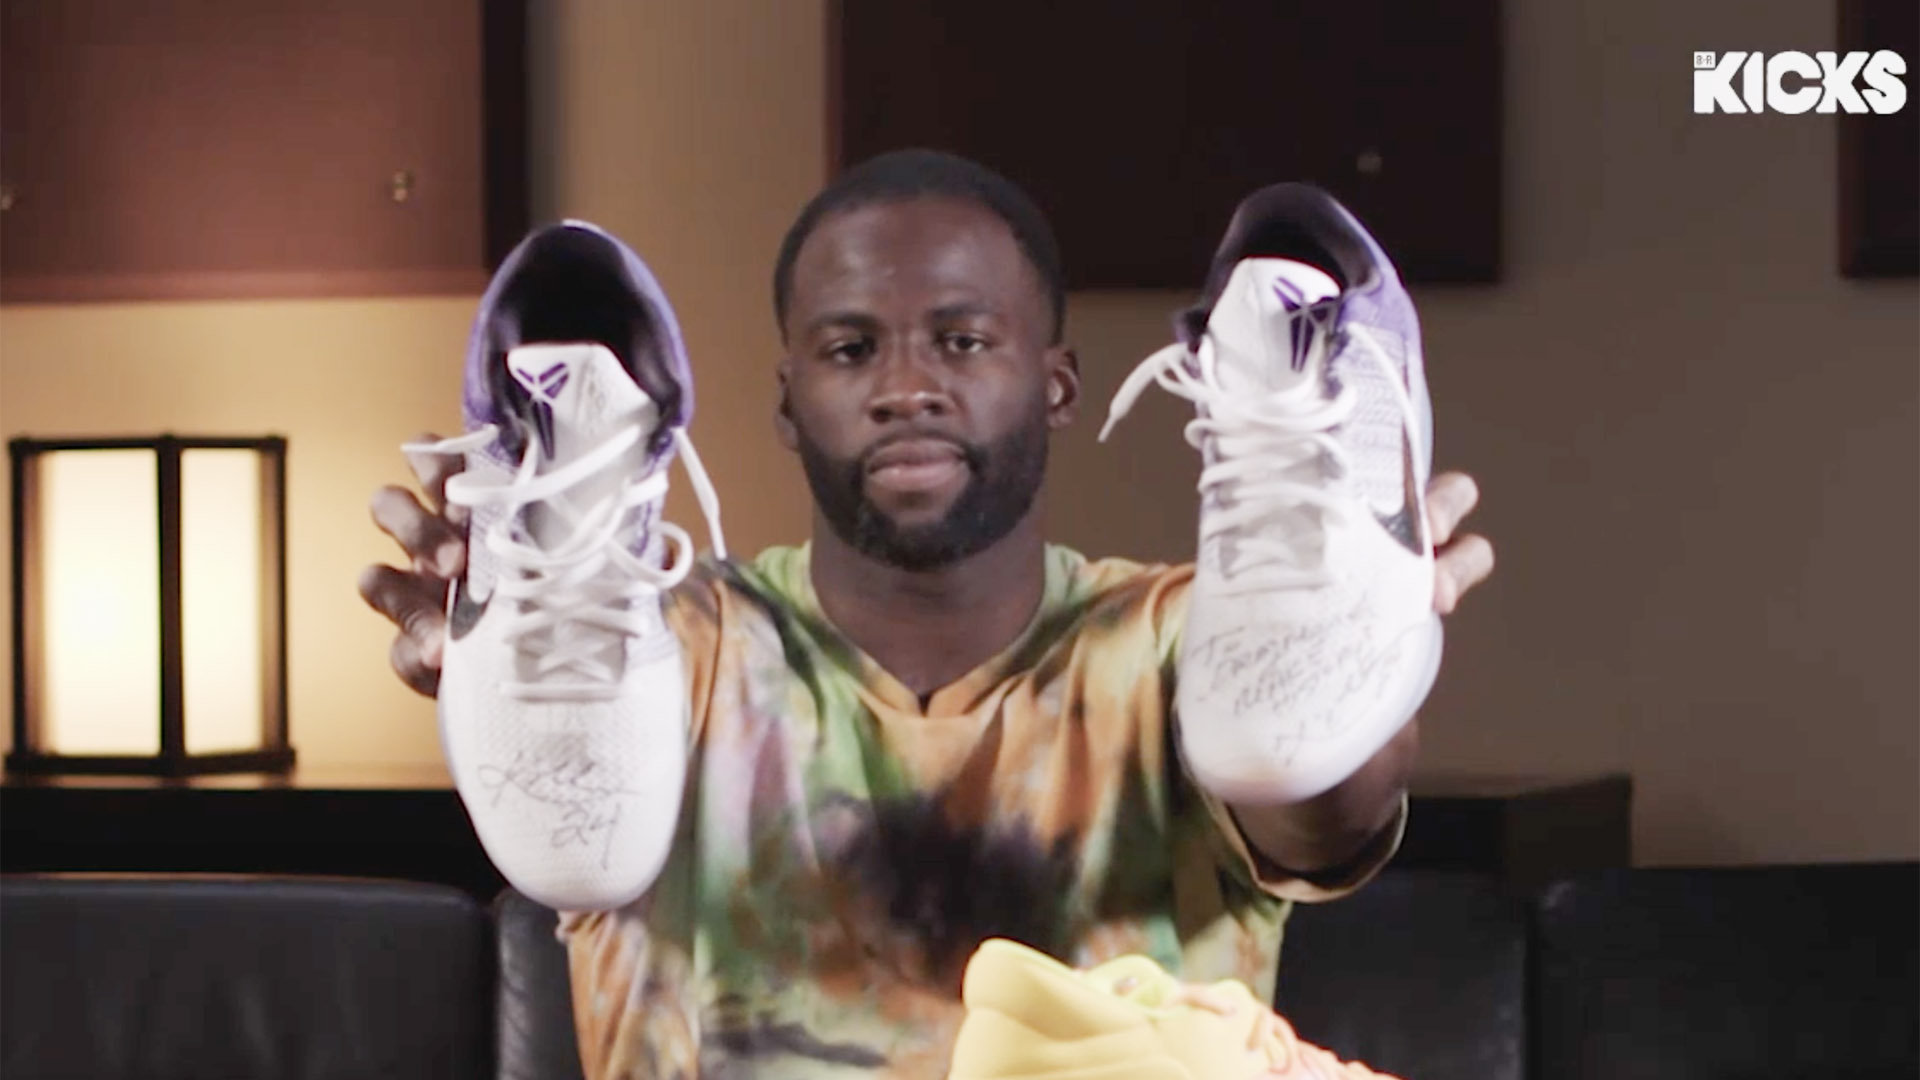 BR Kicks: Unboxed | Draymond Green